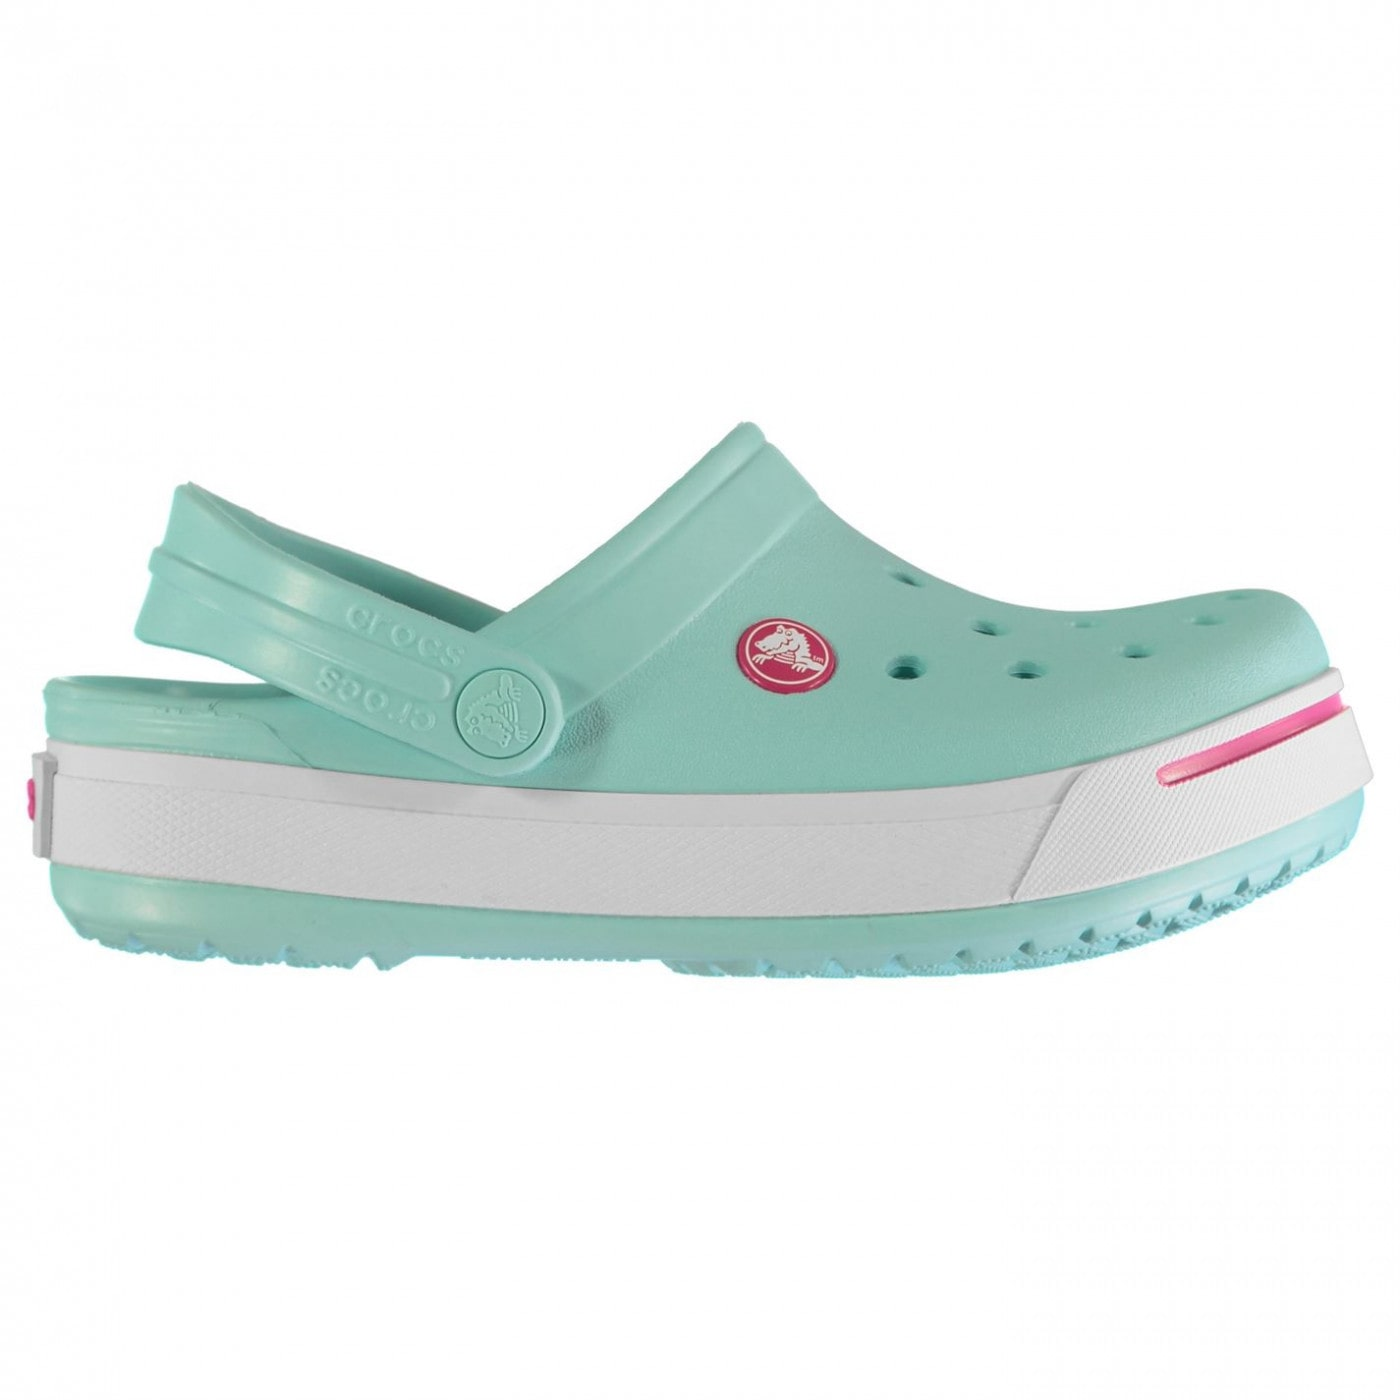 Crocs Band II Children's Clogs